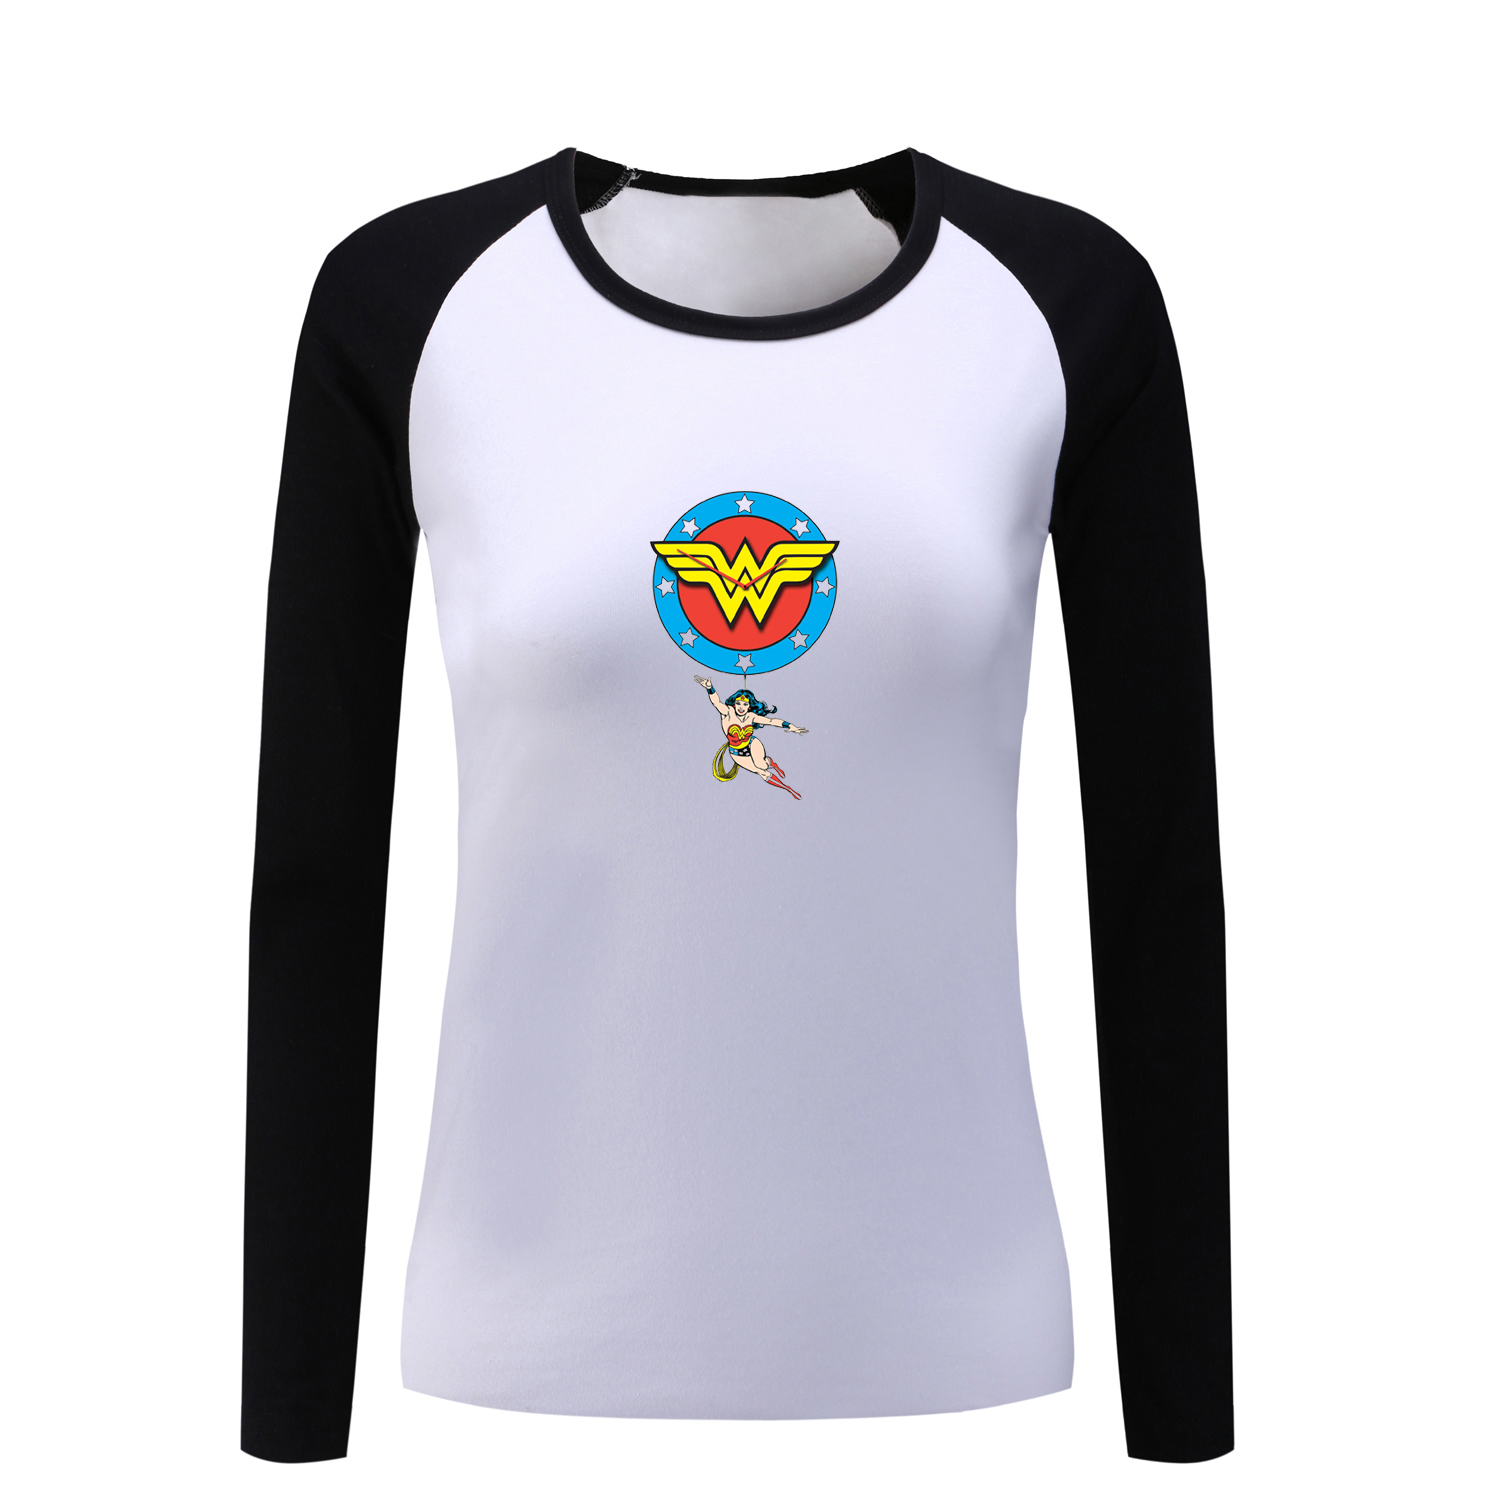 Buy wonder woman superhero clock design Girl t shirts design